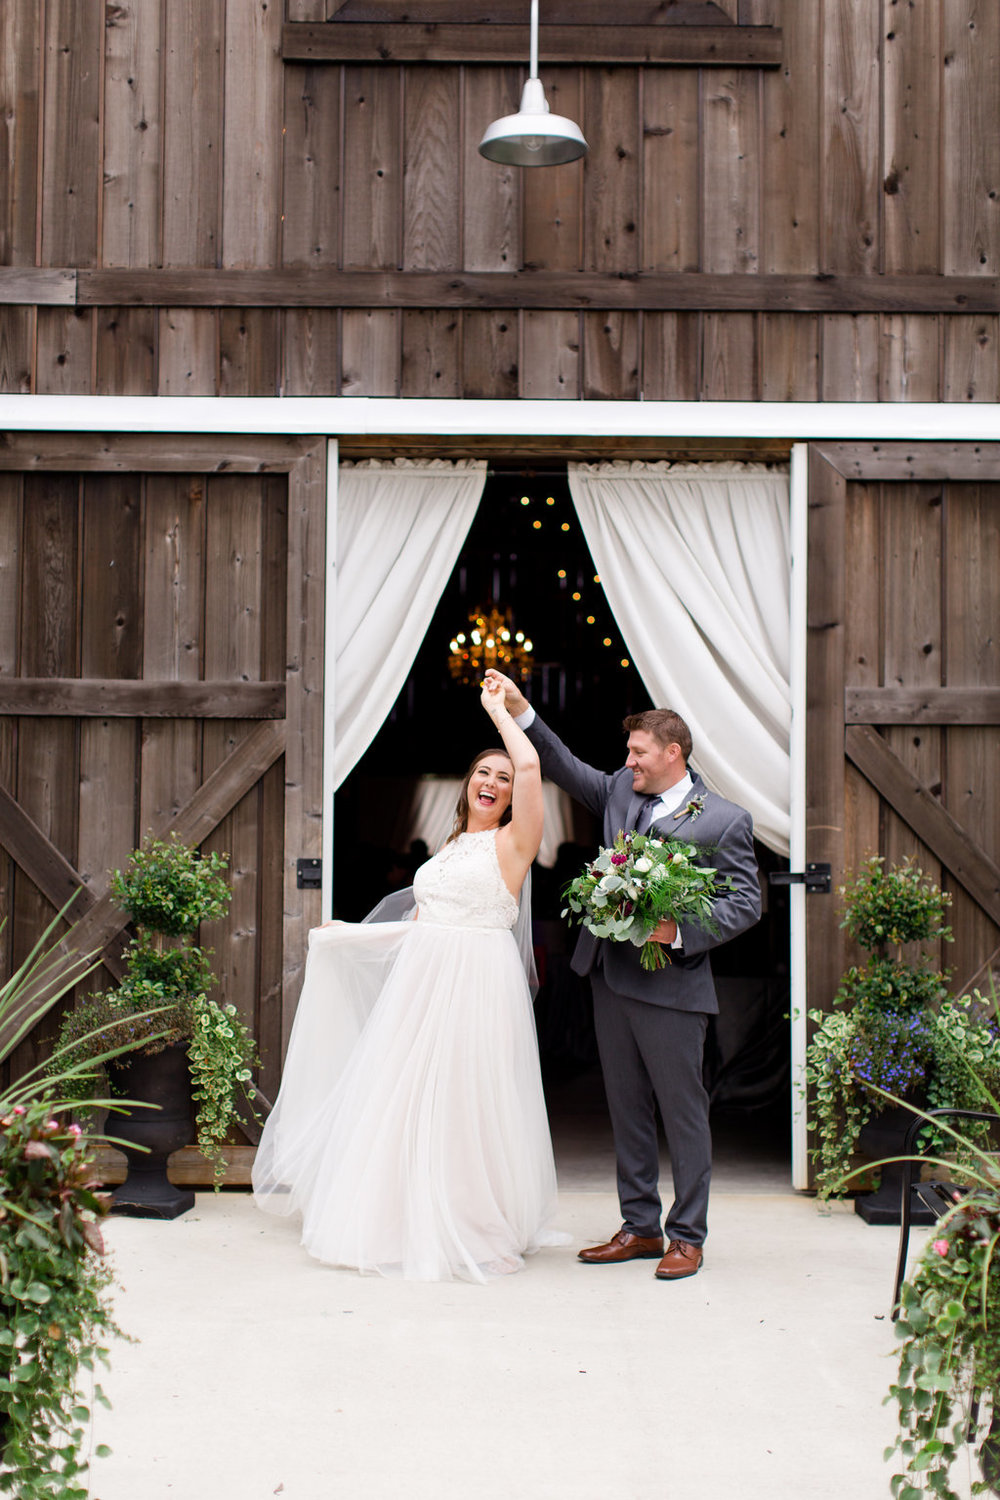 The Barn at Kennedy Farm Wedding - Lizton, Indiana Wedding Venue - Danielle Harris Photography -- Wedding Blog - The Overwhelmed Bride